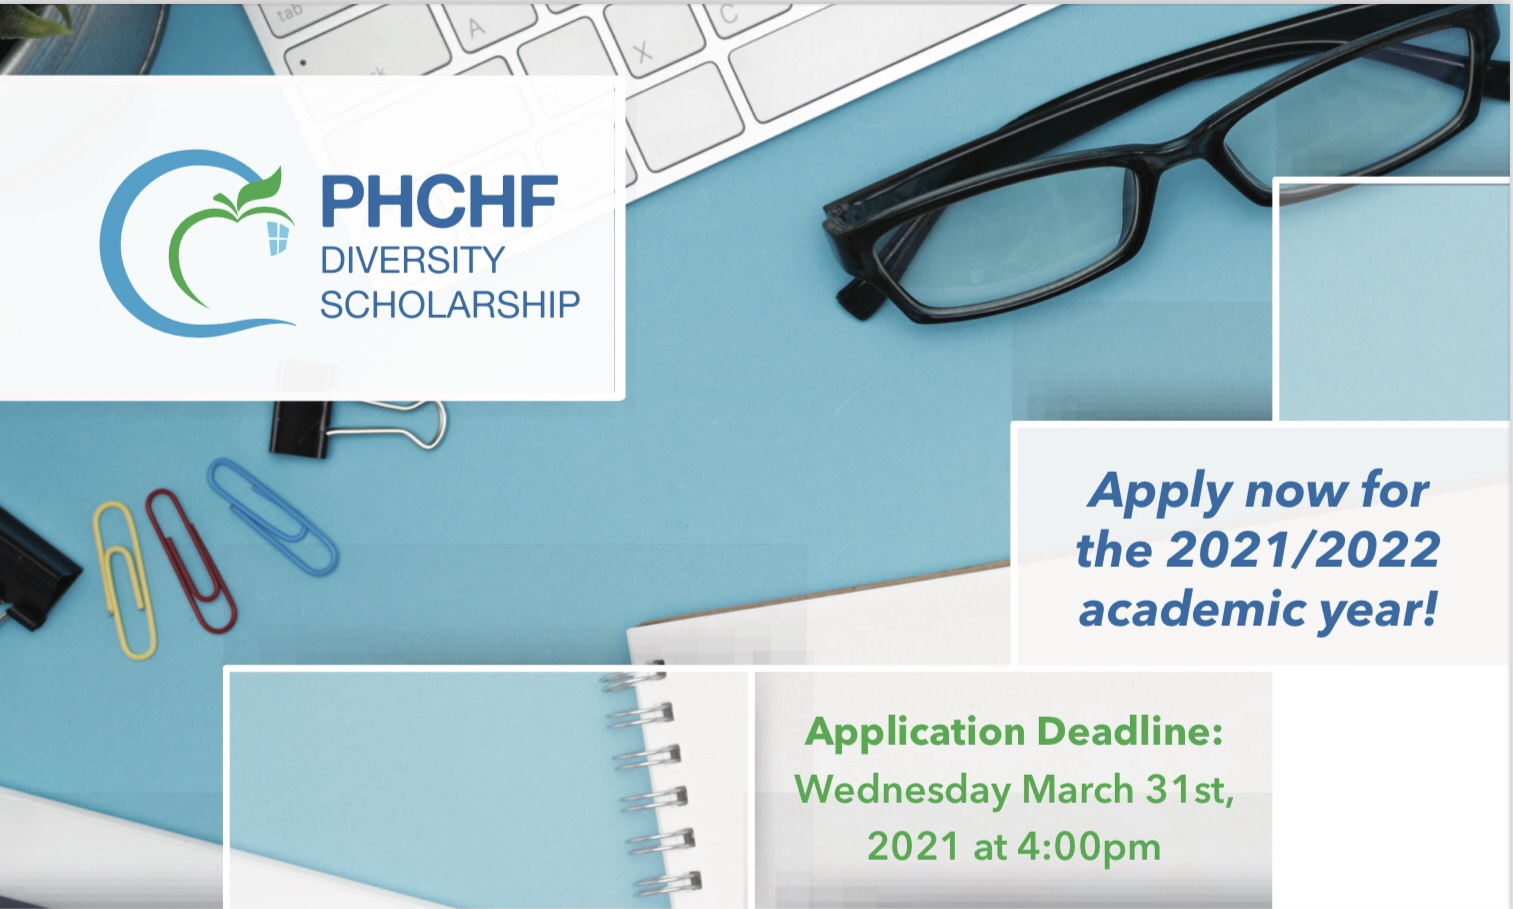 Diversity Scholarship Applications Deadline - 4pm